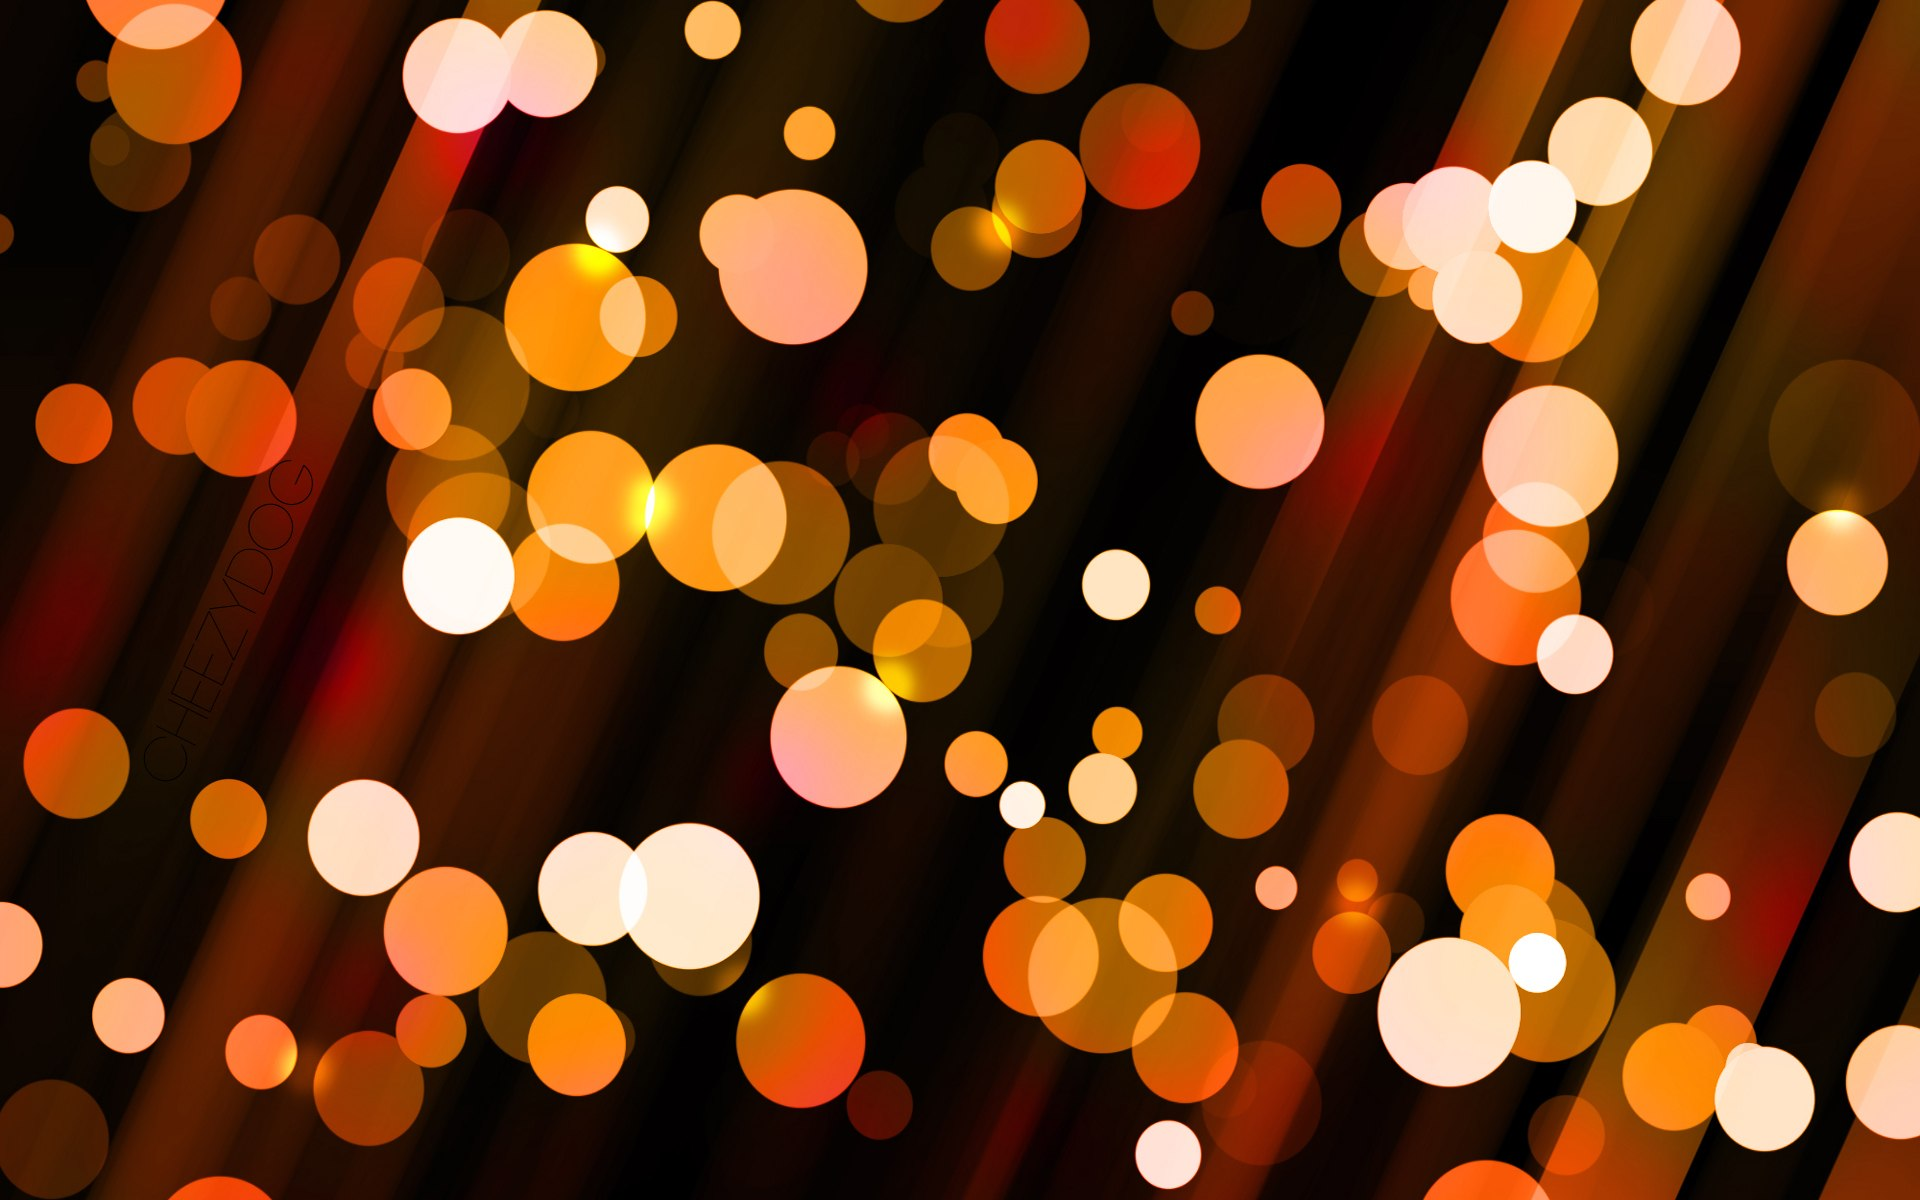 Bokeh lights wallpaper 1920x1200 HQ WALLPAPER - (#43838)